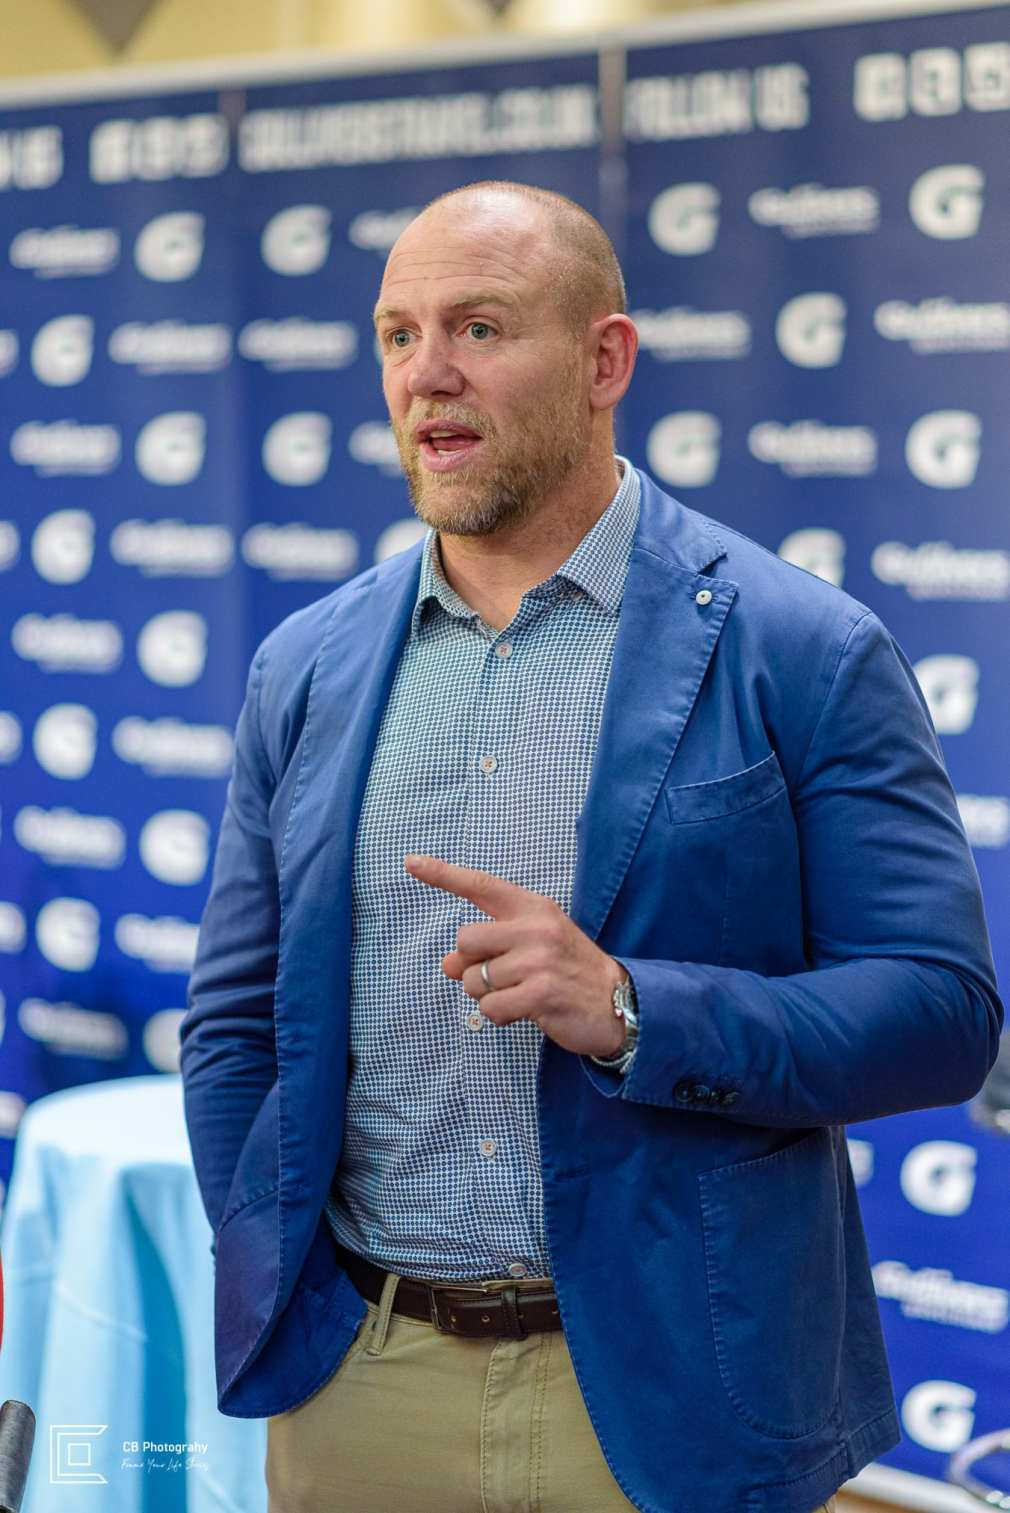 Mike Tindal during an event in Tokyo, by Cristian Bucur Photographer in Tokyo